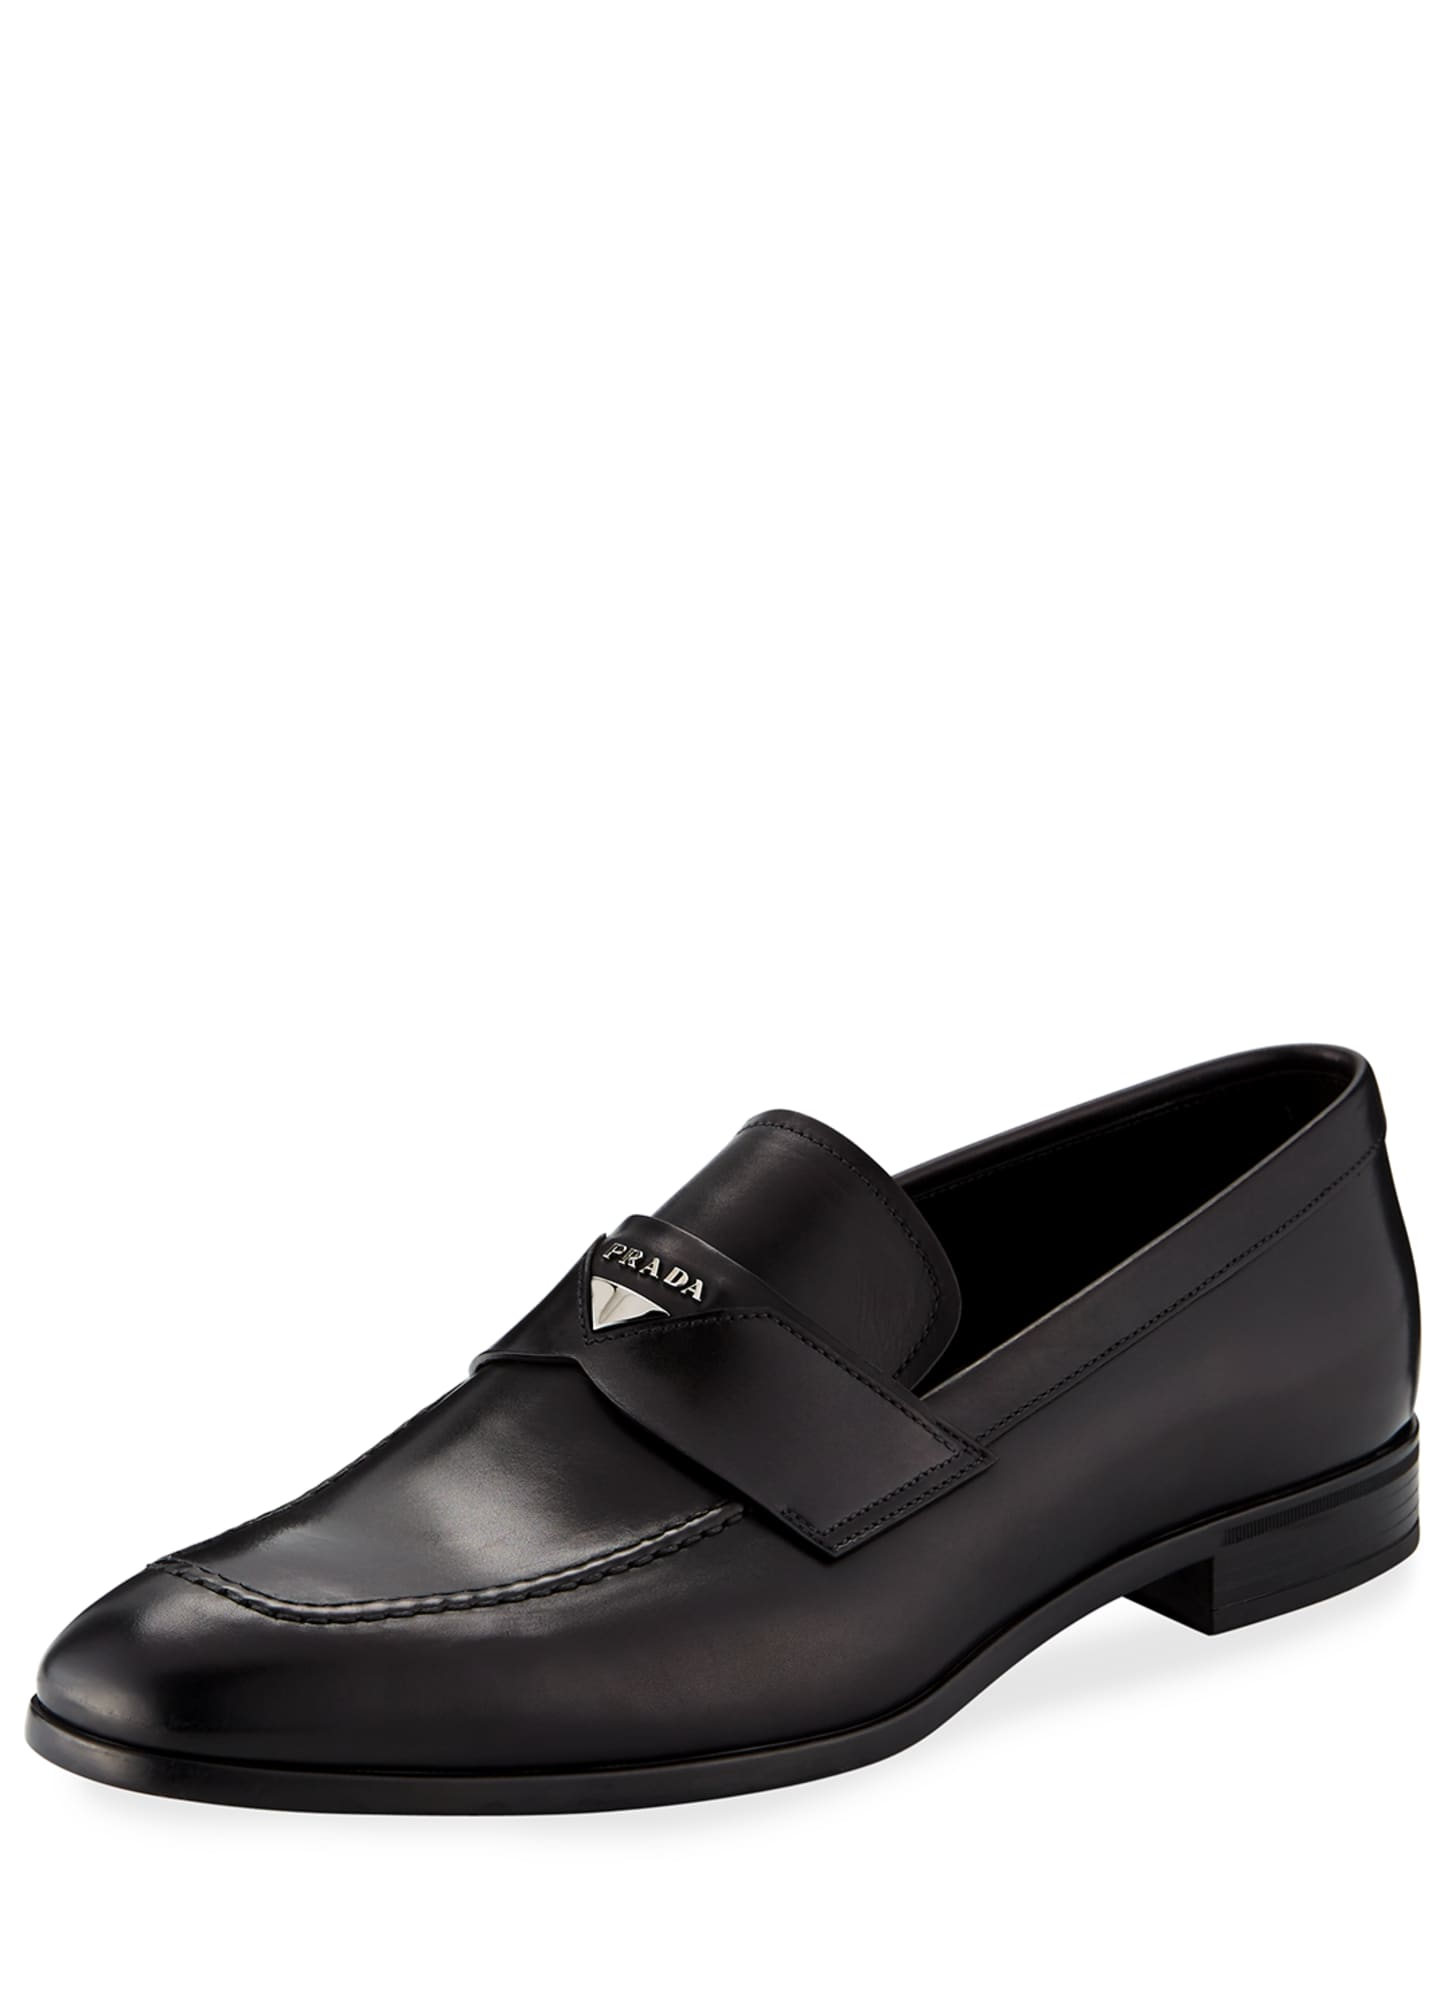 Prada Leather Penny Loafer